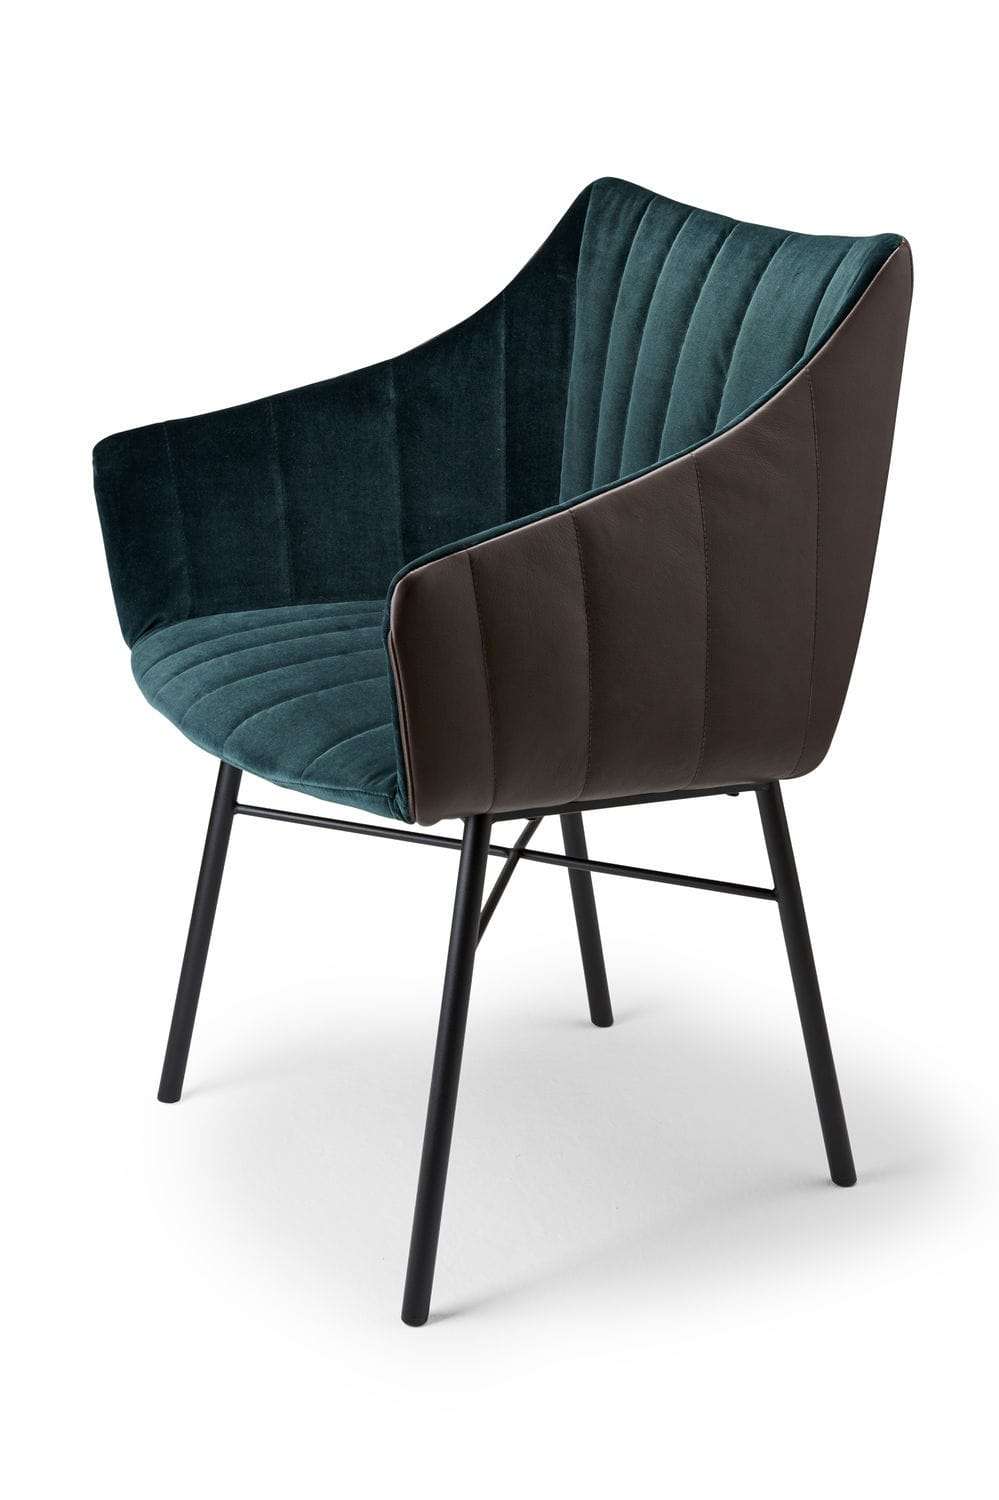 Metal outdoor club chairs -  Contemporary Chair Fabric Metal Leather Rubie By Murken Hansen Freifrau